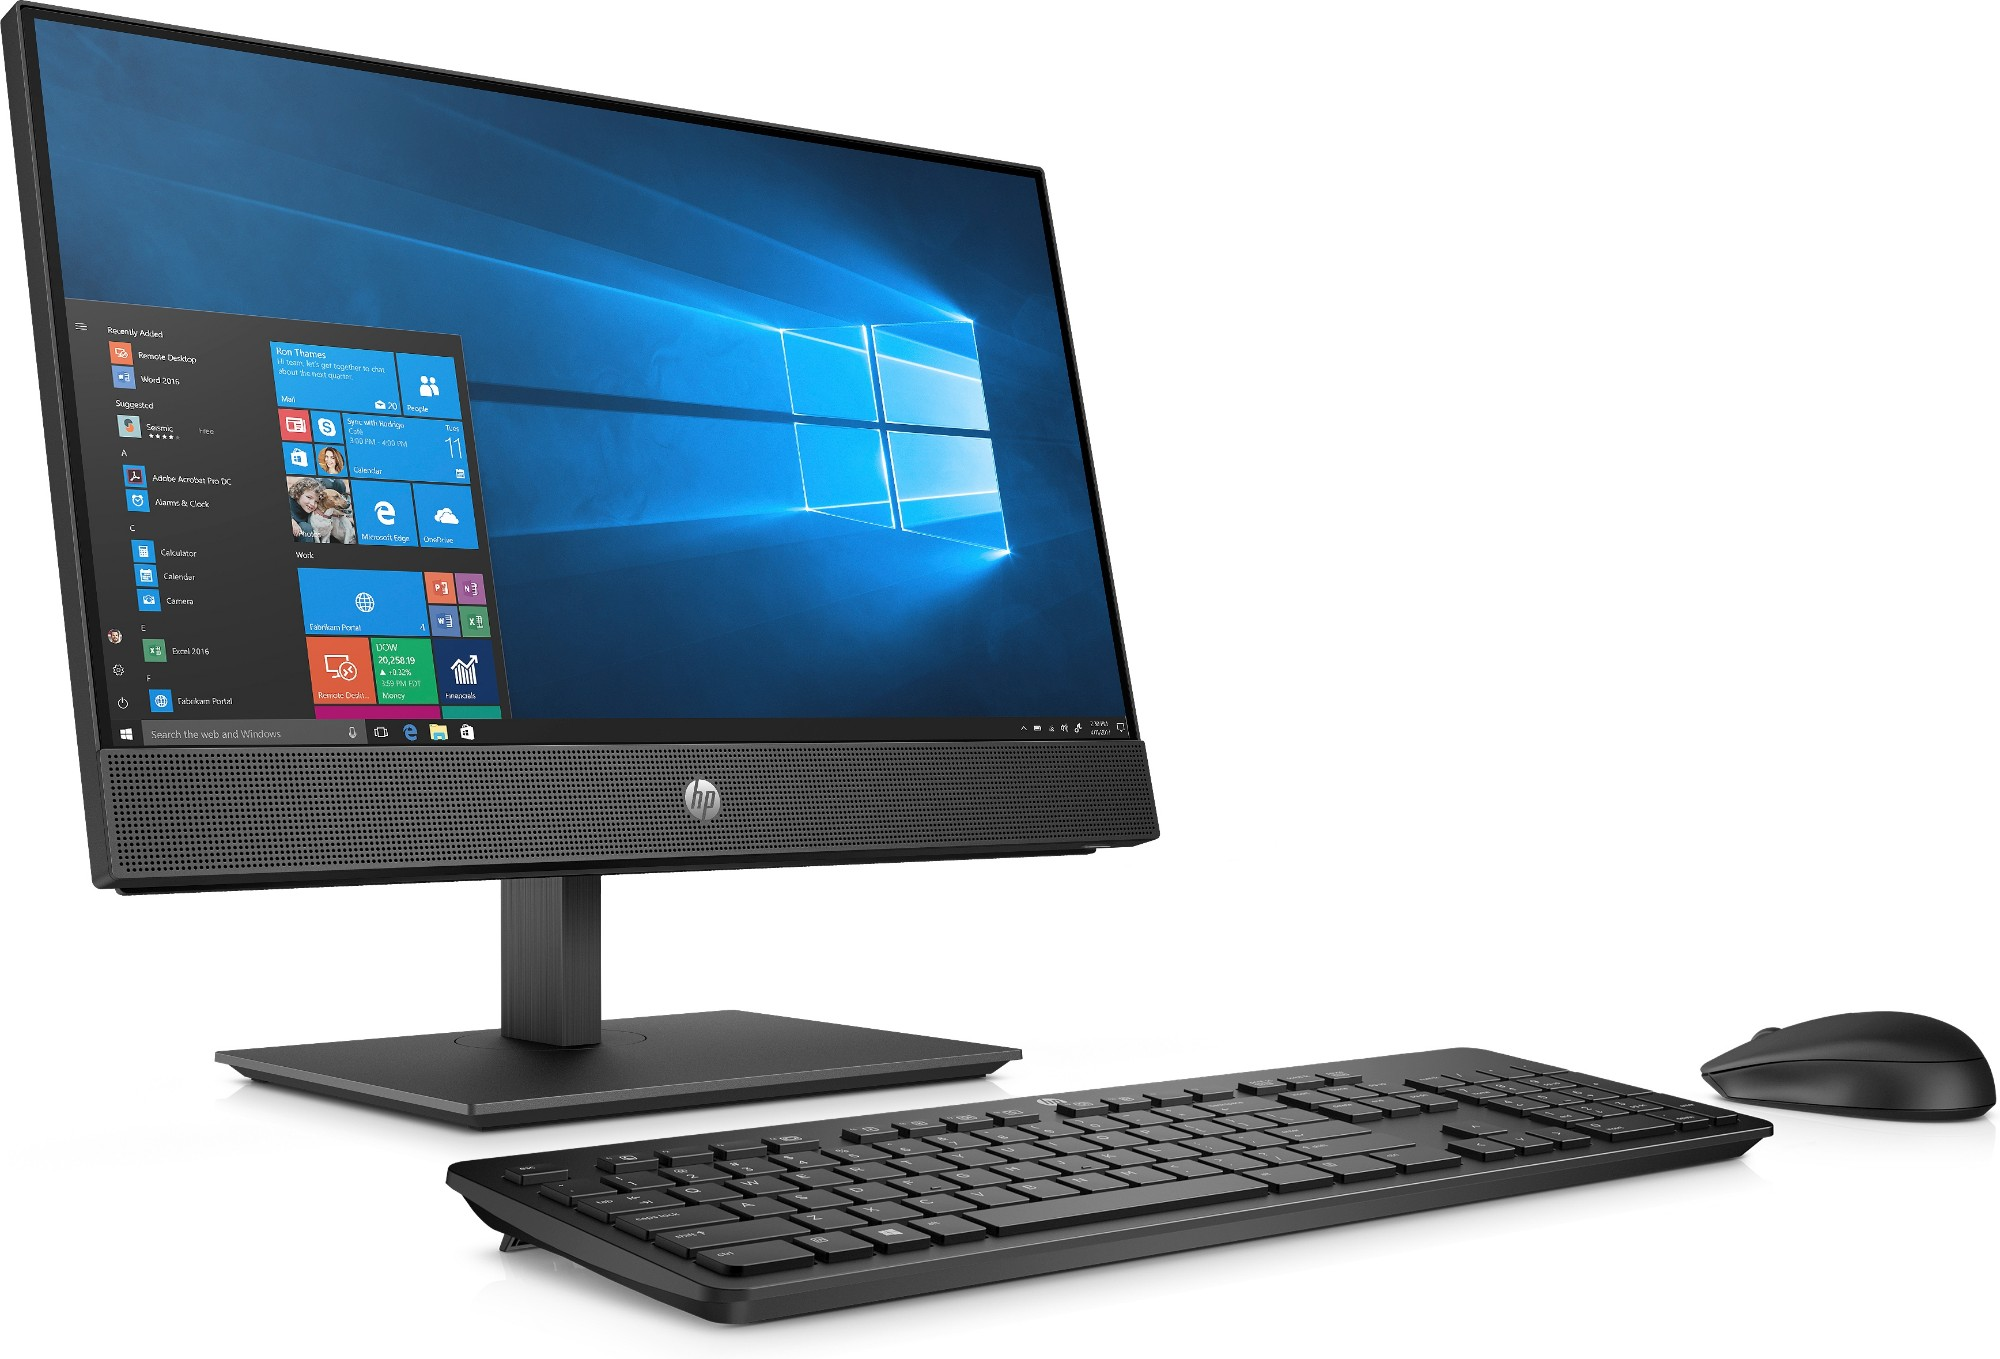 "HP 600 G4 AIO I5-8500T 21.5"" PLUS HP E223 21.5 MONITOR FOR $109 (1FH45AA)"